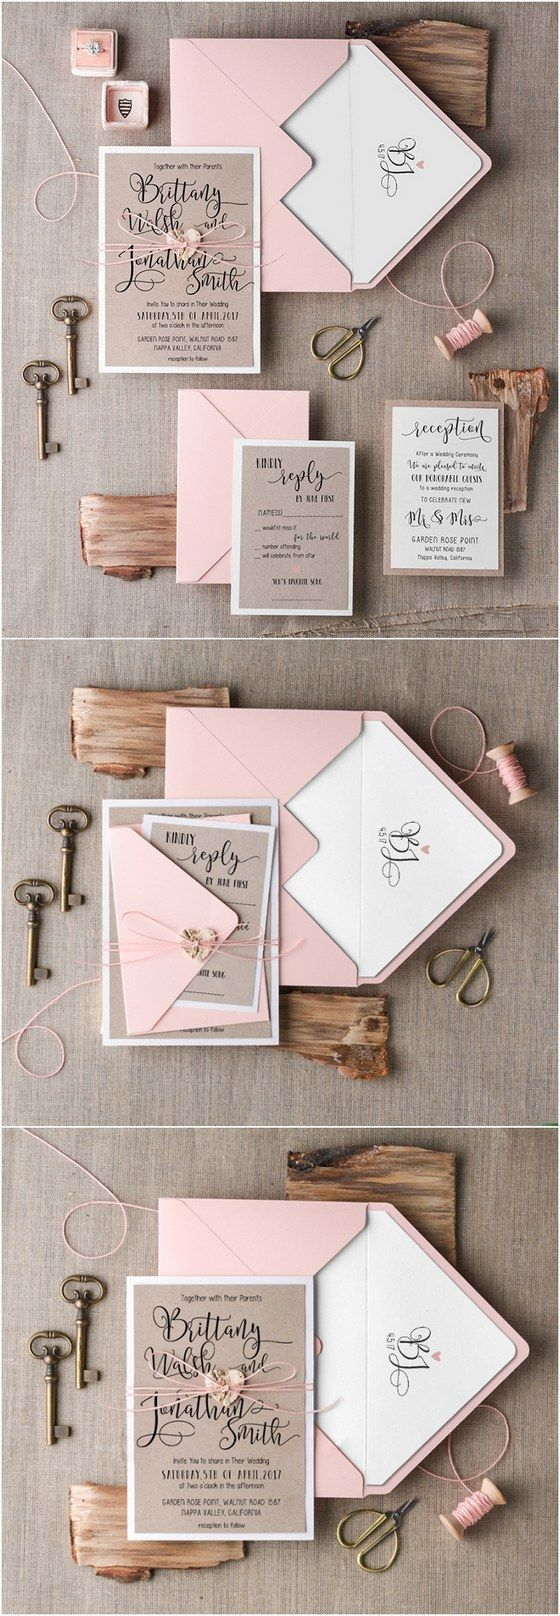 ideas for country wedding invitations%0A Rustic pink wedding invitations  rusticwedding  countrywedding  weddingideas